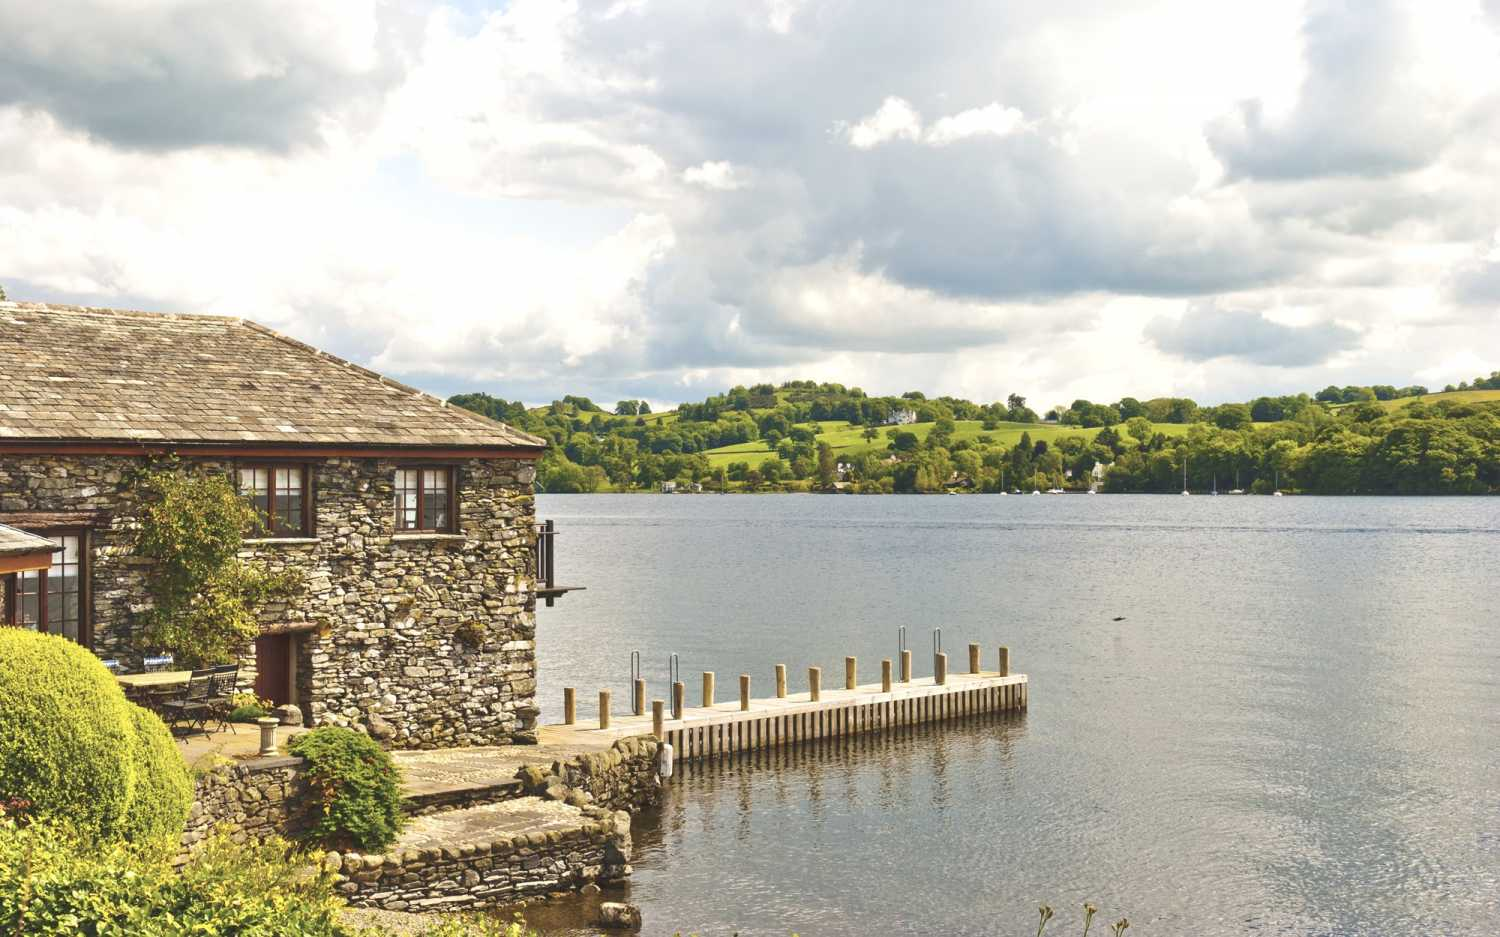 Picture of Monmouthshire - Last Minute Cottages in Monmouthshire